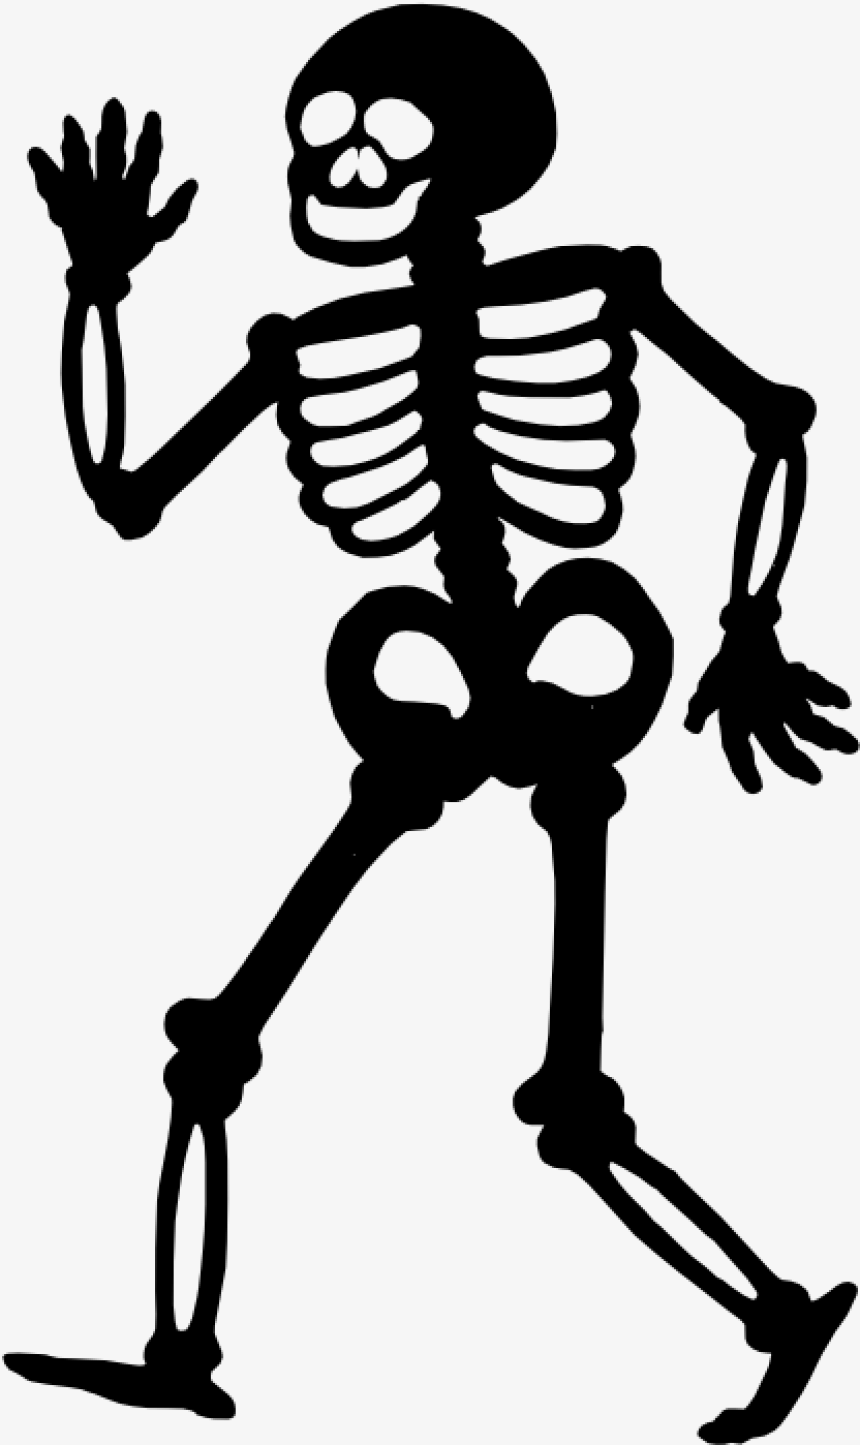 Dessin Halloween Zombie.Zombie Silhouette Png Halloween Skeleton Png Download 7917553 Png Images On Pngarea